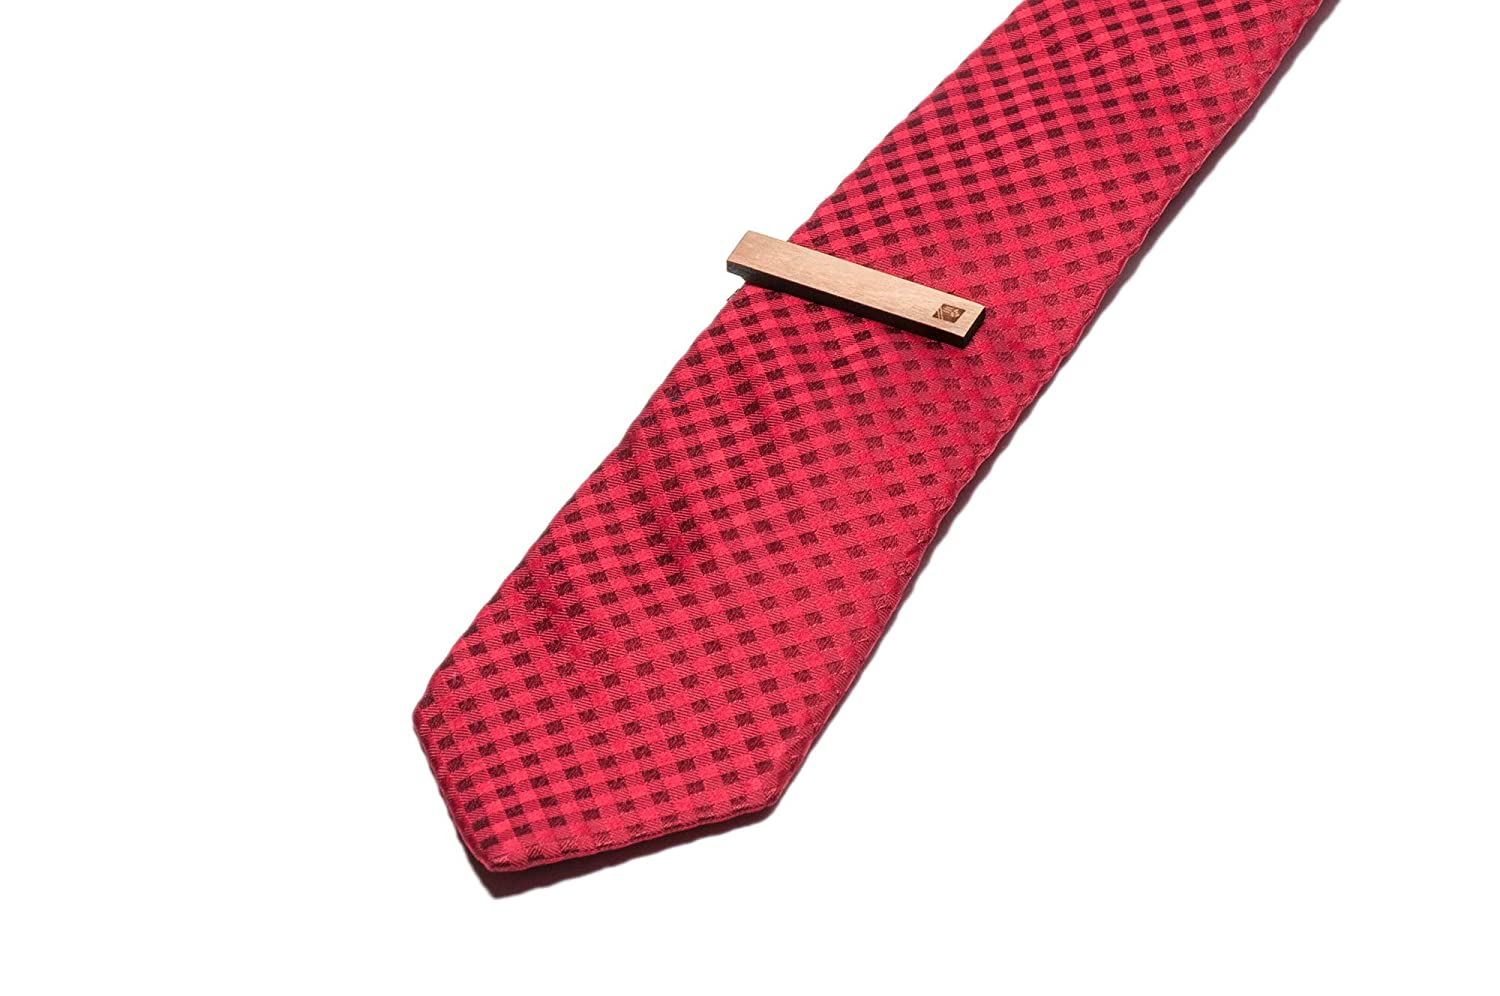 Wooden Accessories Company Wooden Tie Clips with Laser Engraved Invitation Card Design Cherry Wood Tie Bar Engraved in The USA